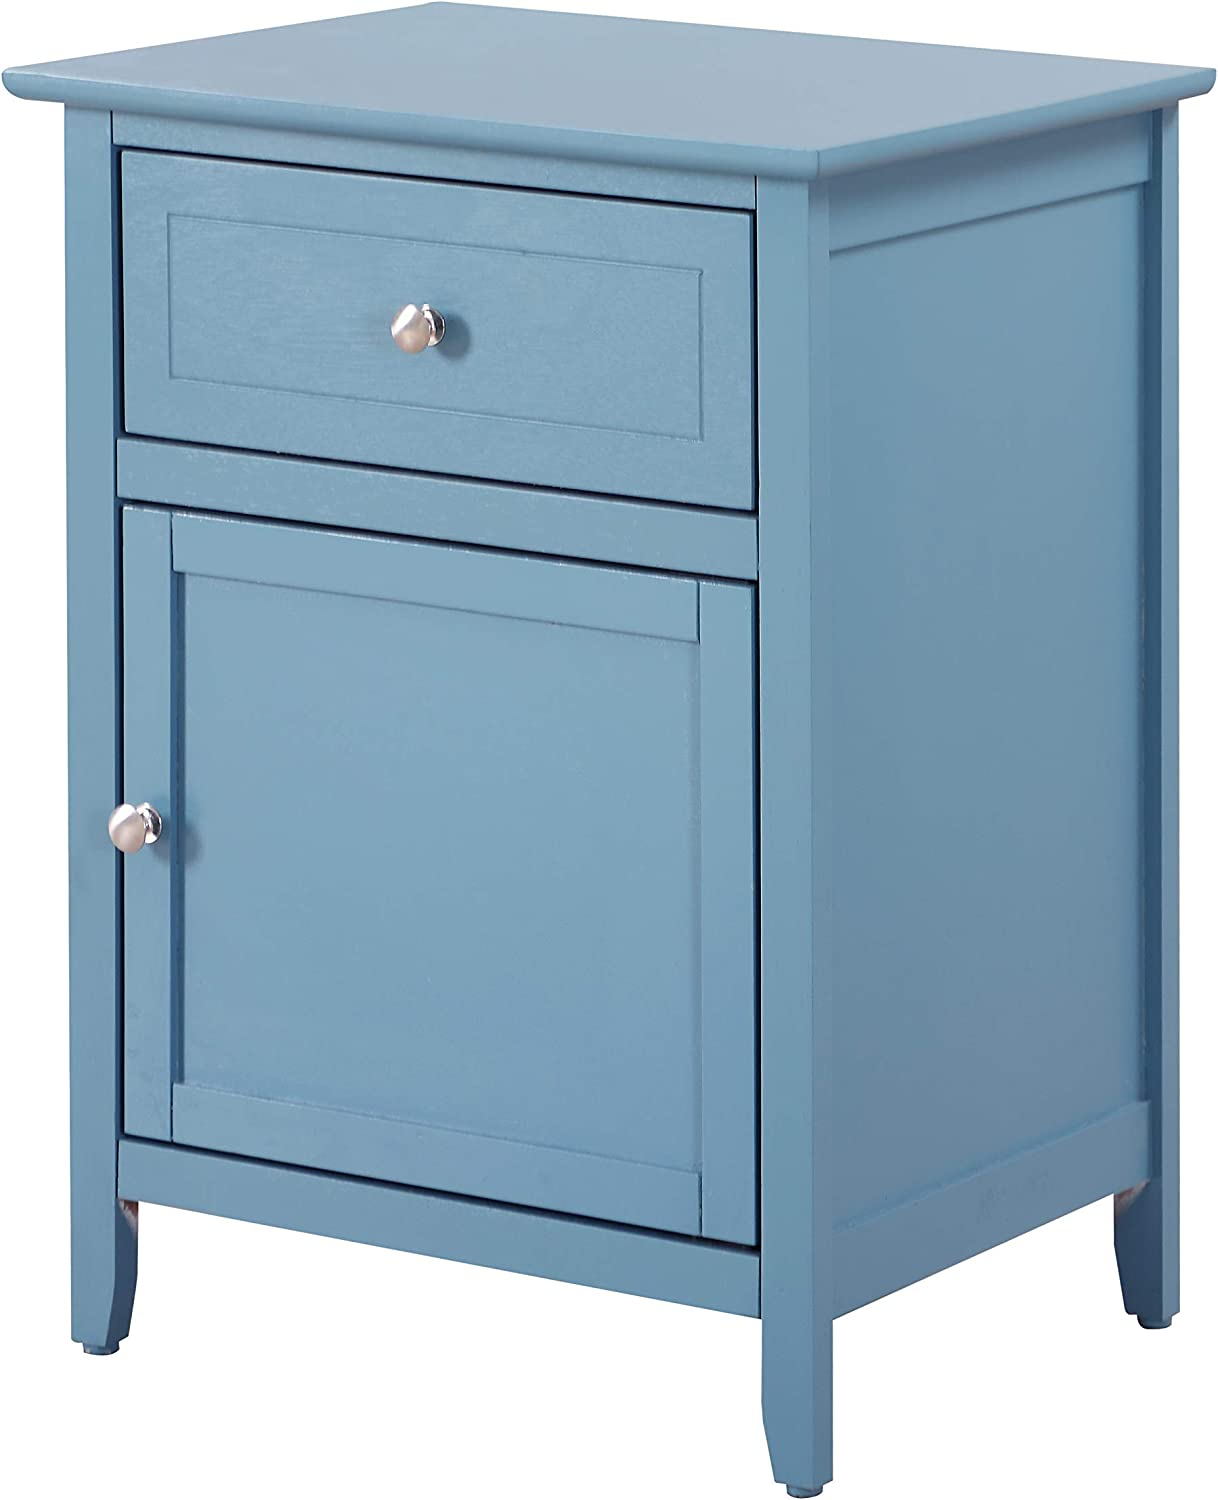 Glory Furniture 1 Drawer /1 Door Nightstand, Teal